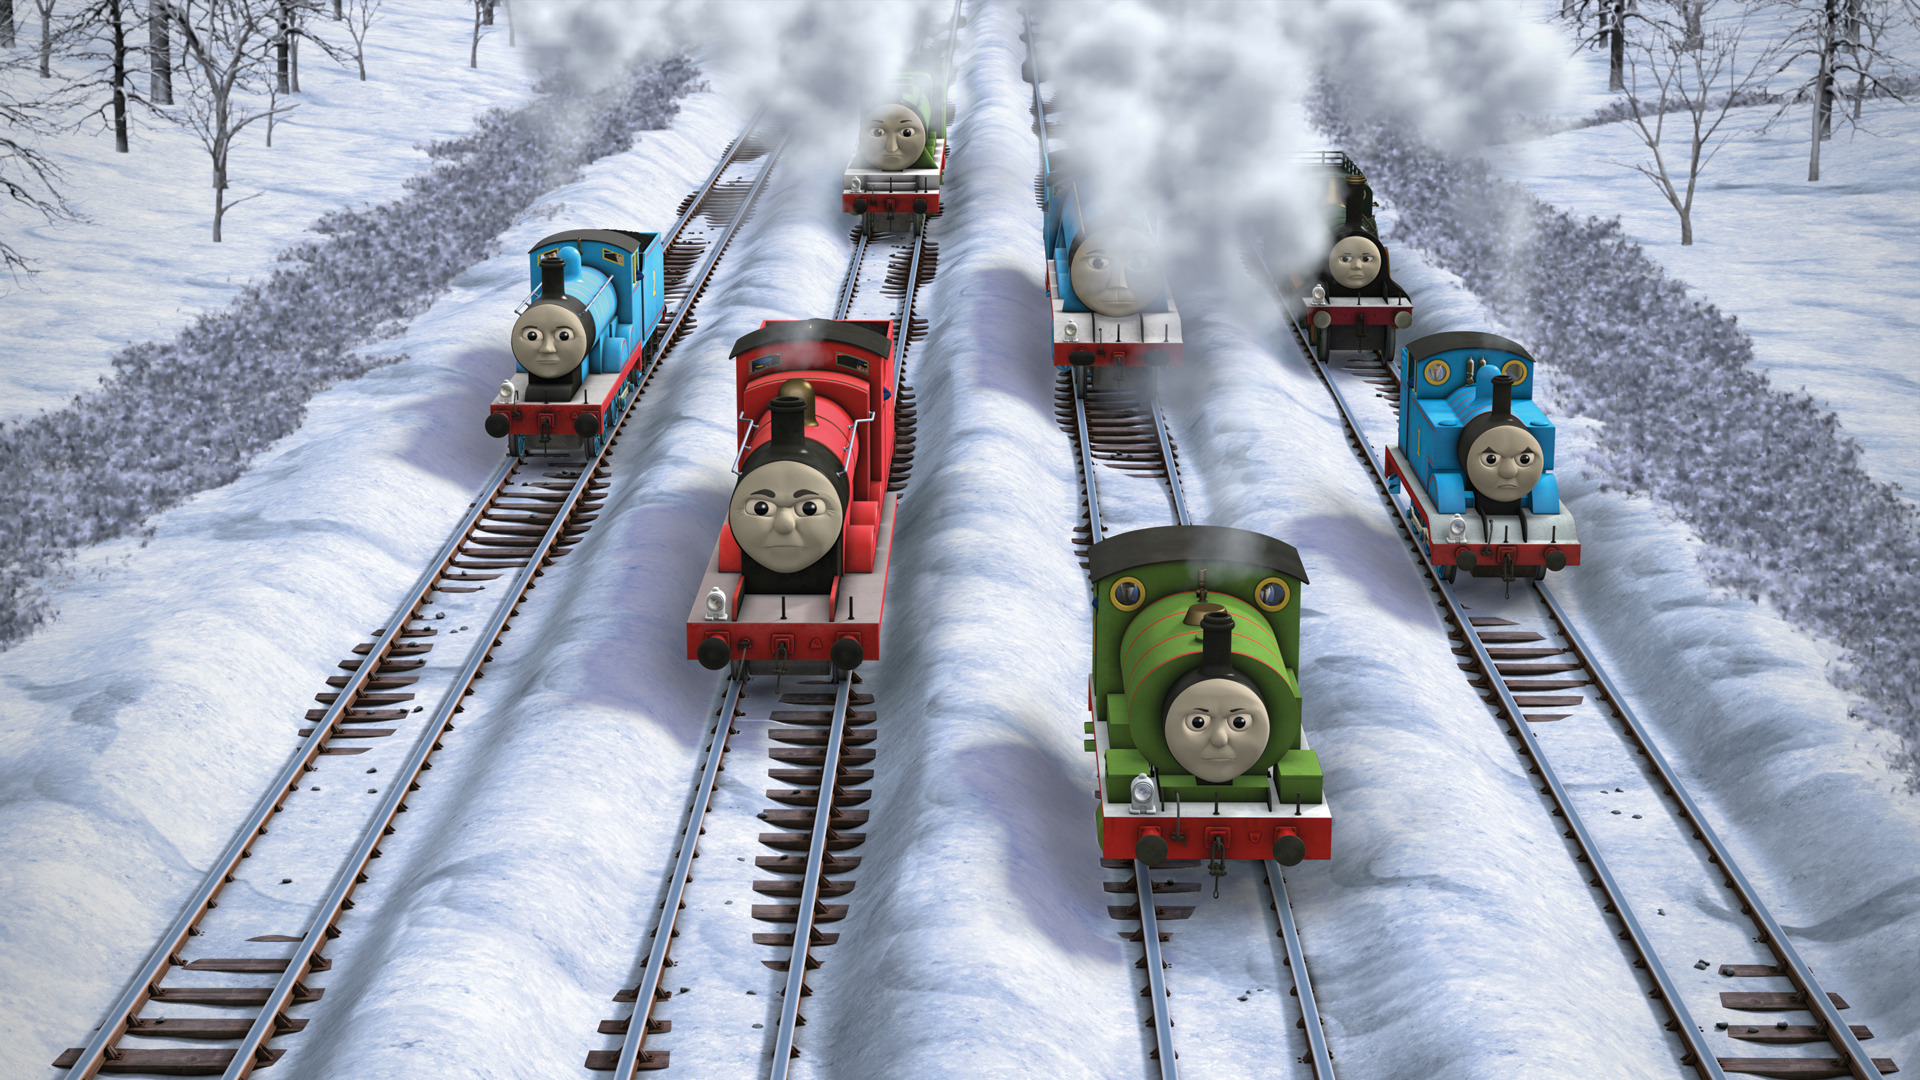 The Missing Christmas Decorations Thomas The Tank Engine Wikia